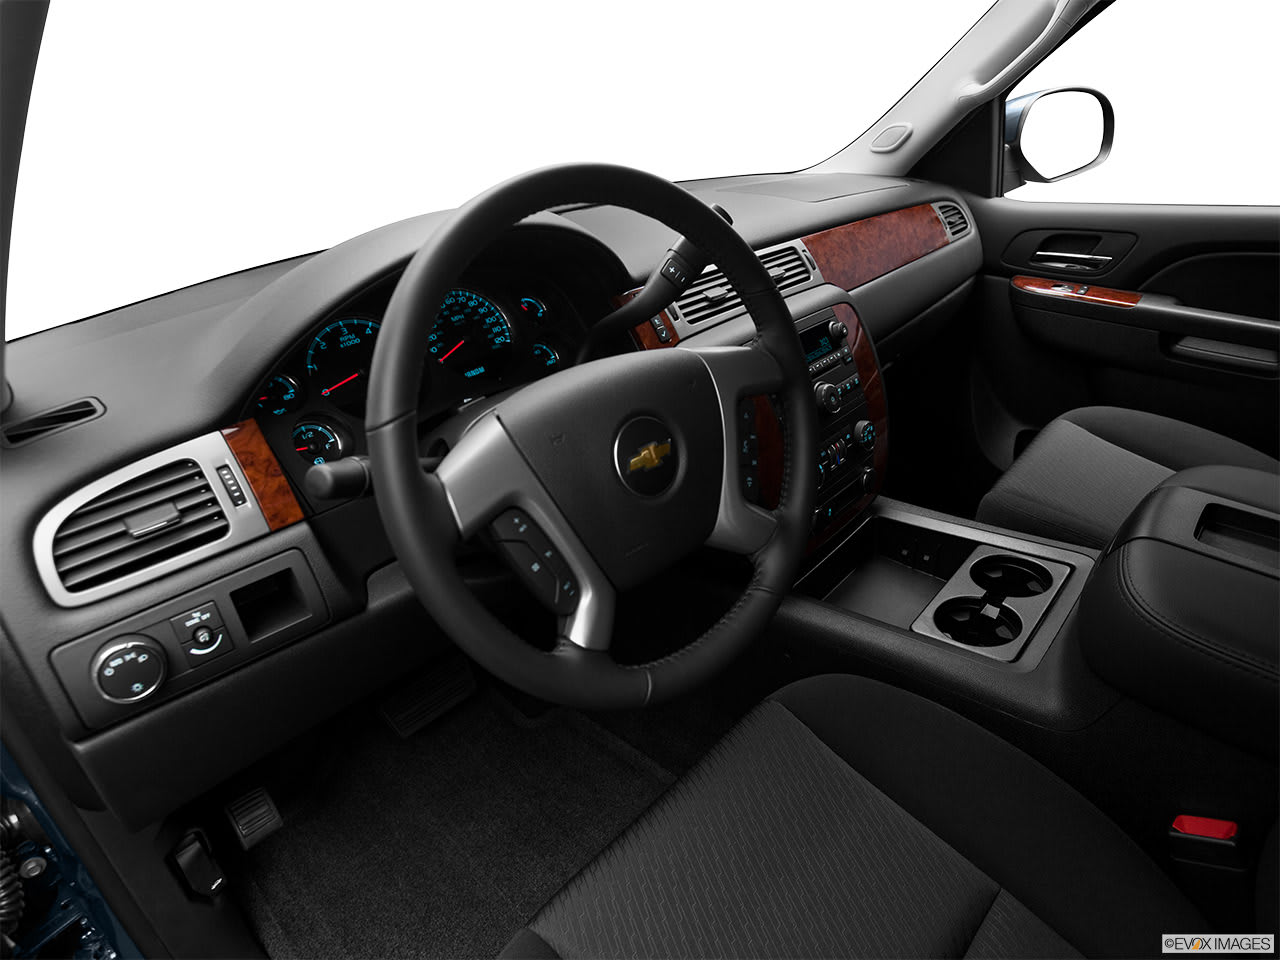 Chevrolet Avalanche 2012 Interior